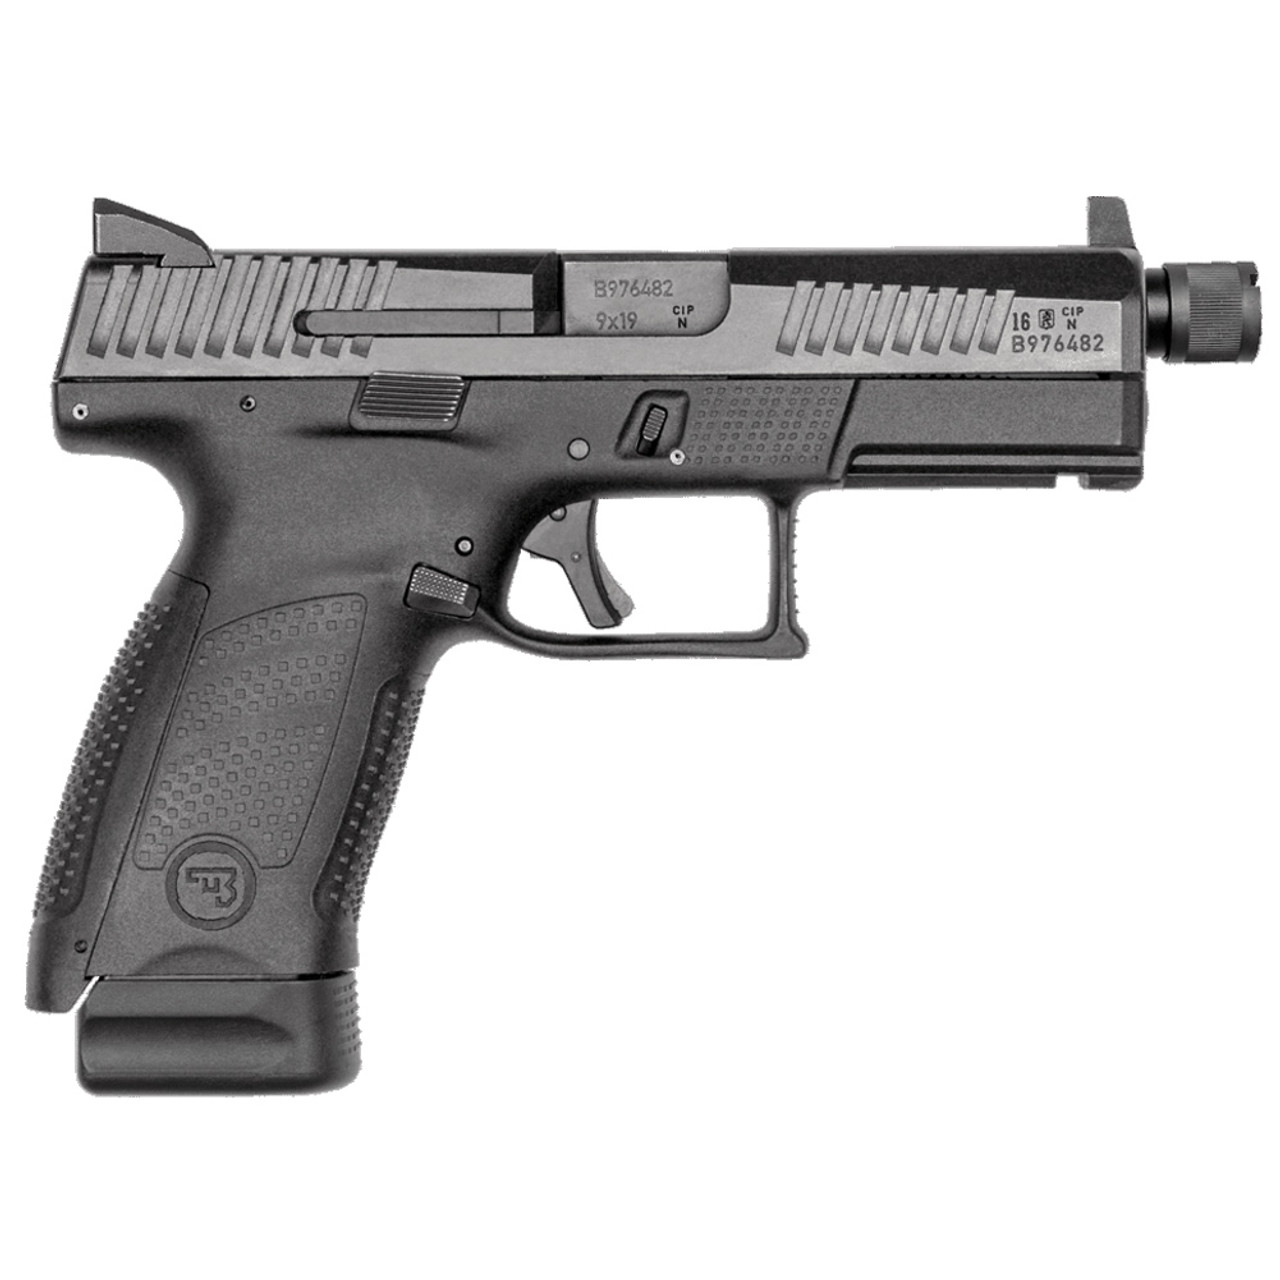 CZ P-10 C 9mm 17rd Suppressor-Ready Black Pistol (91533)